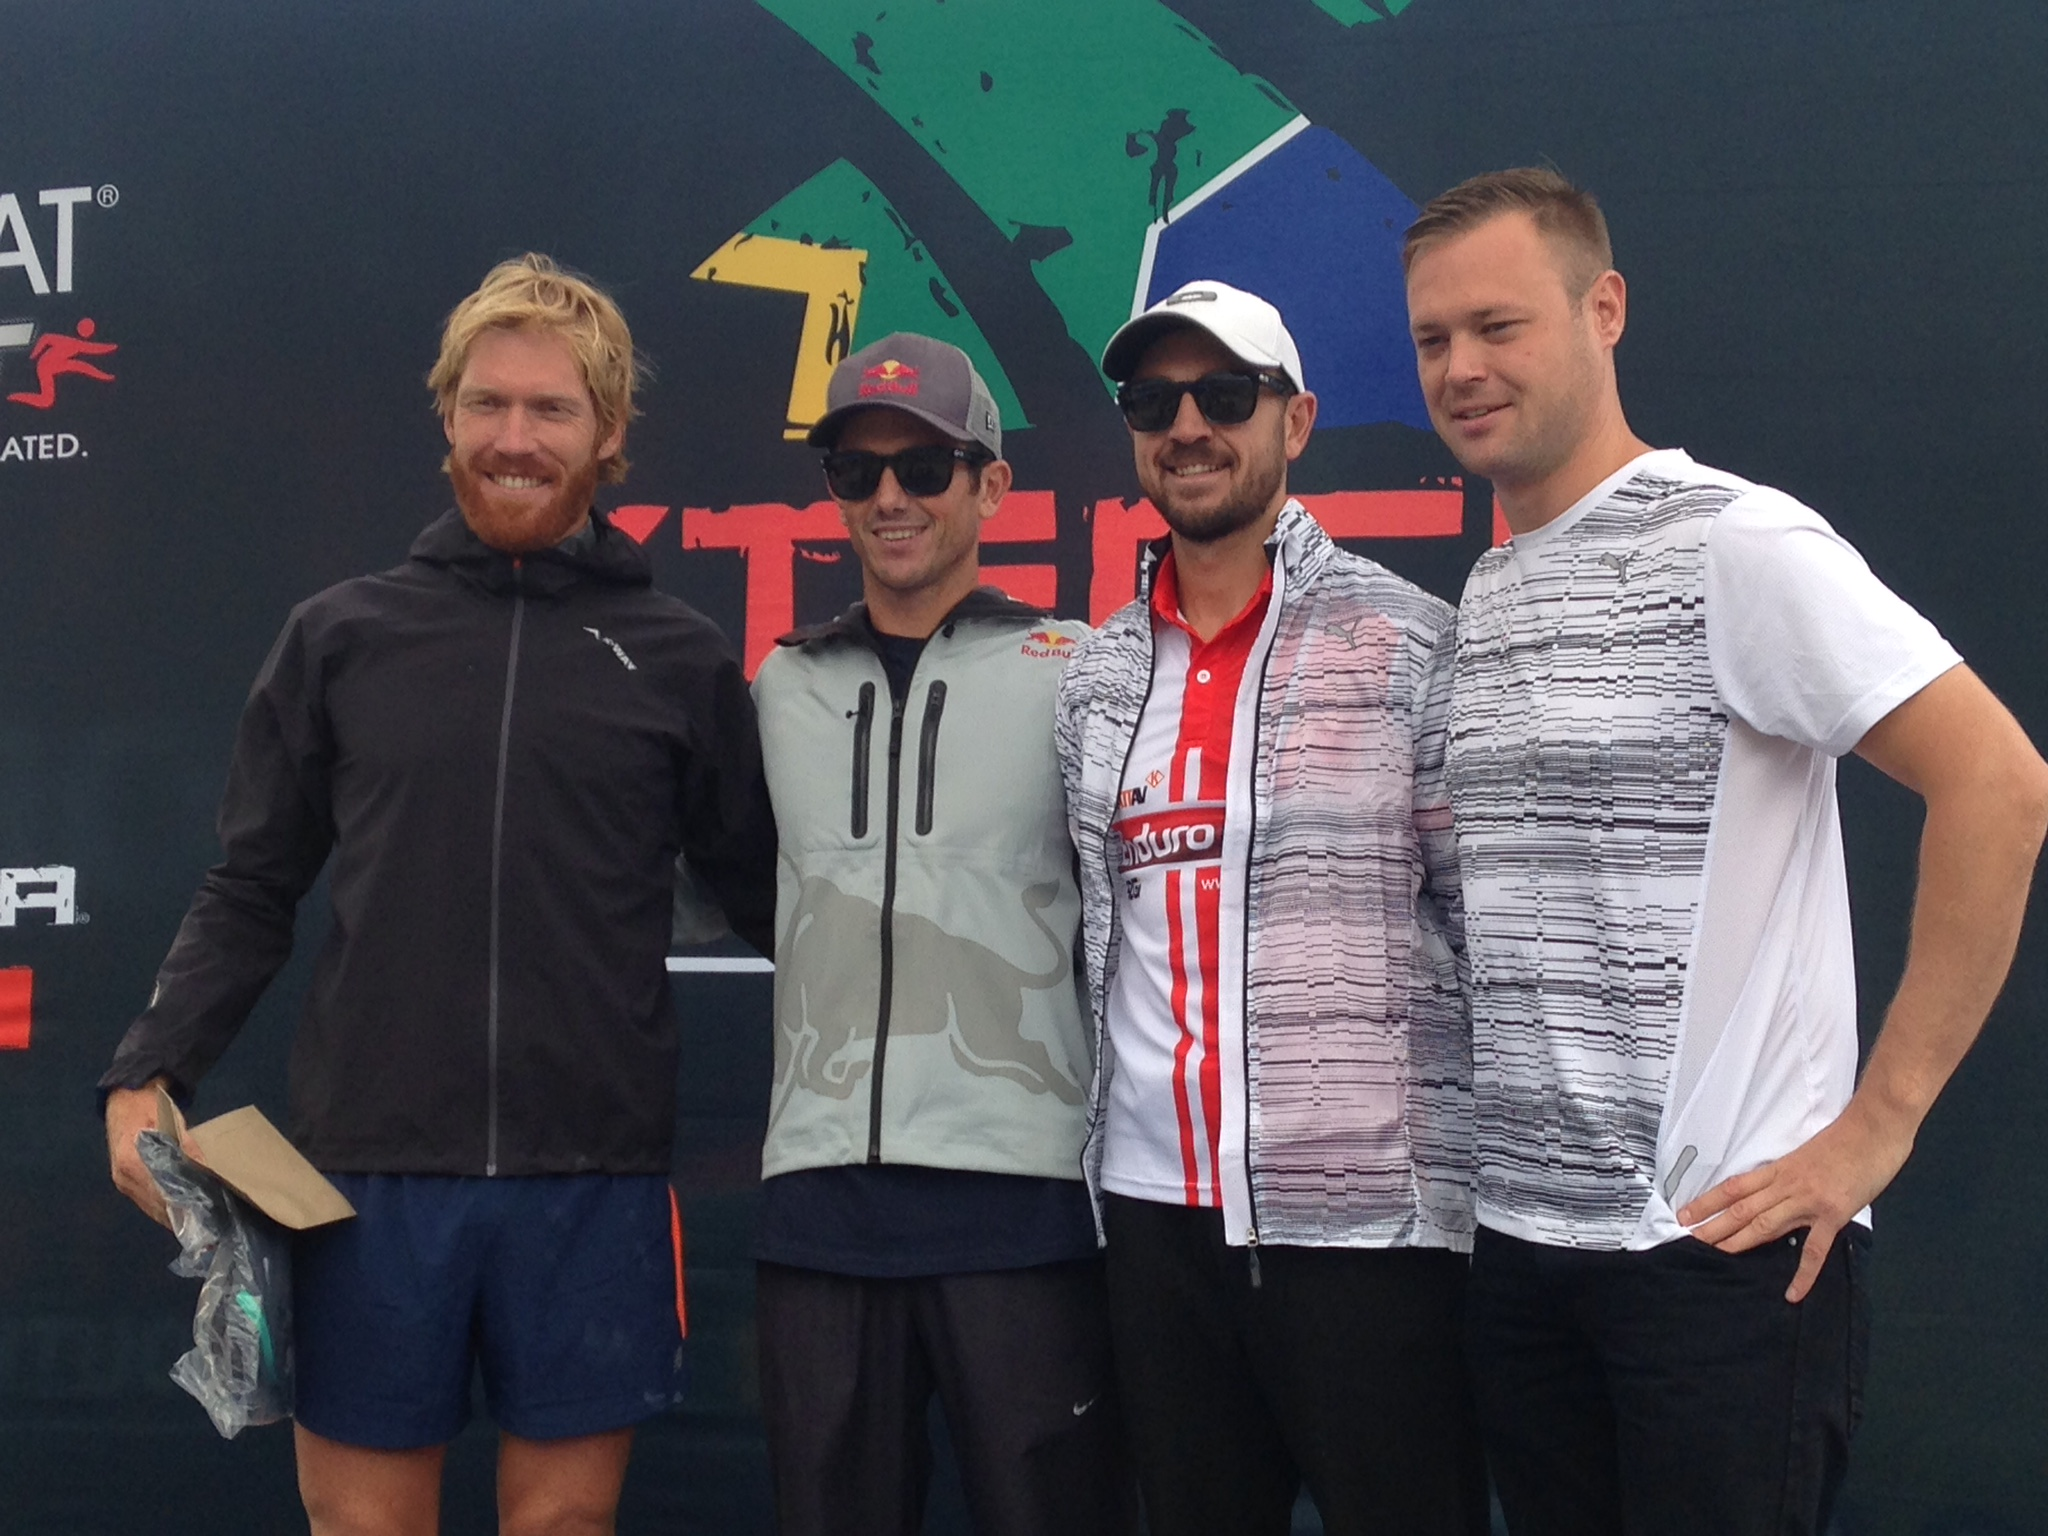 Men's podium with AJ Calitz, Lieuwe Boonstra and Morne Van Greunen with Grant Hamilton of Puma South Africa.